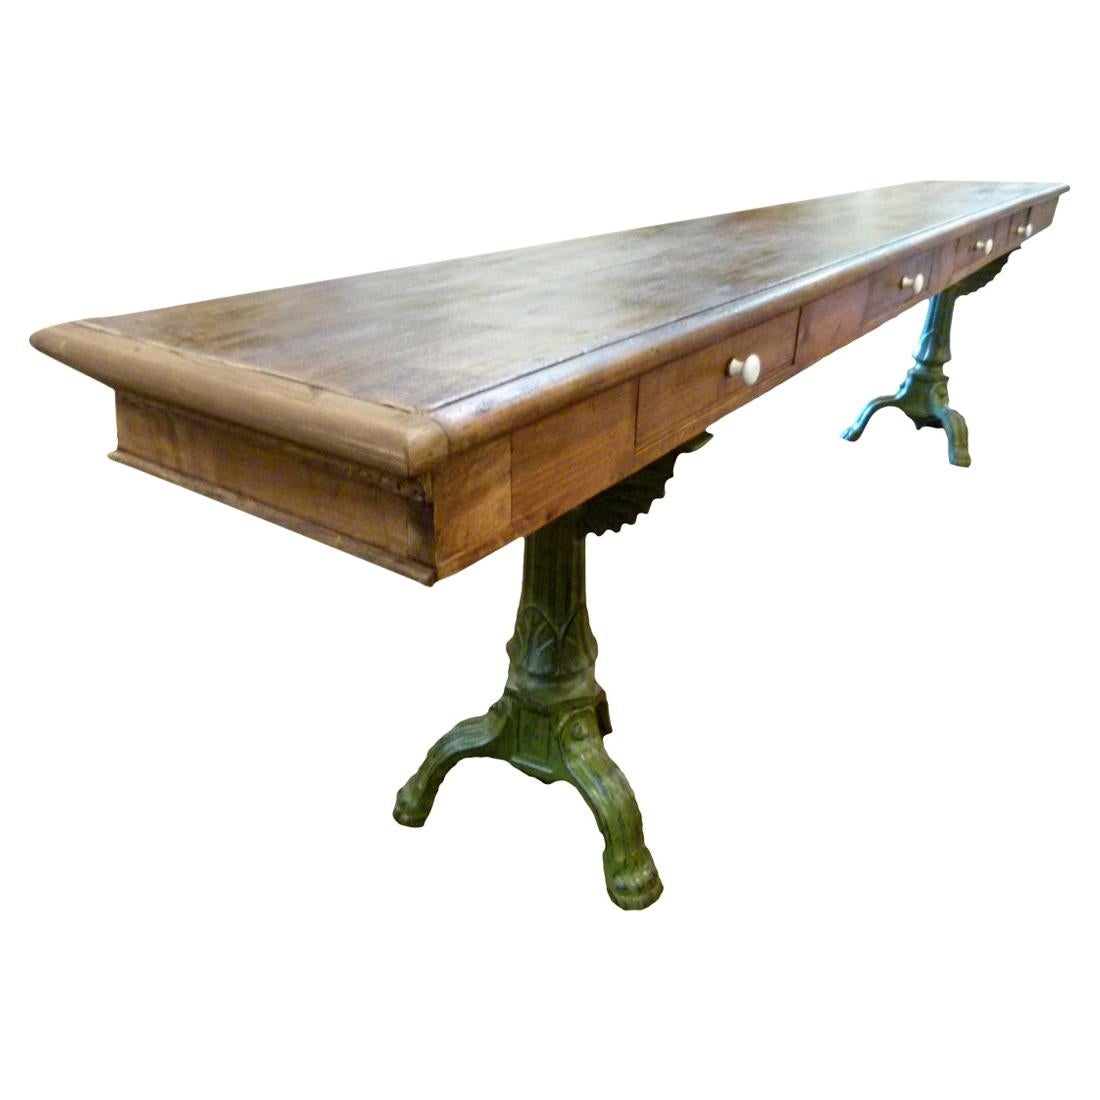 20th Century Large Wooden Work Table